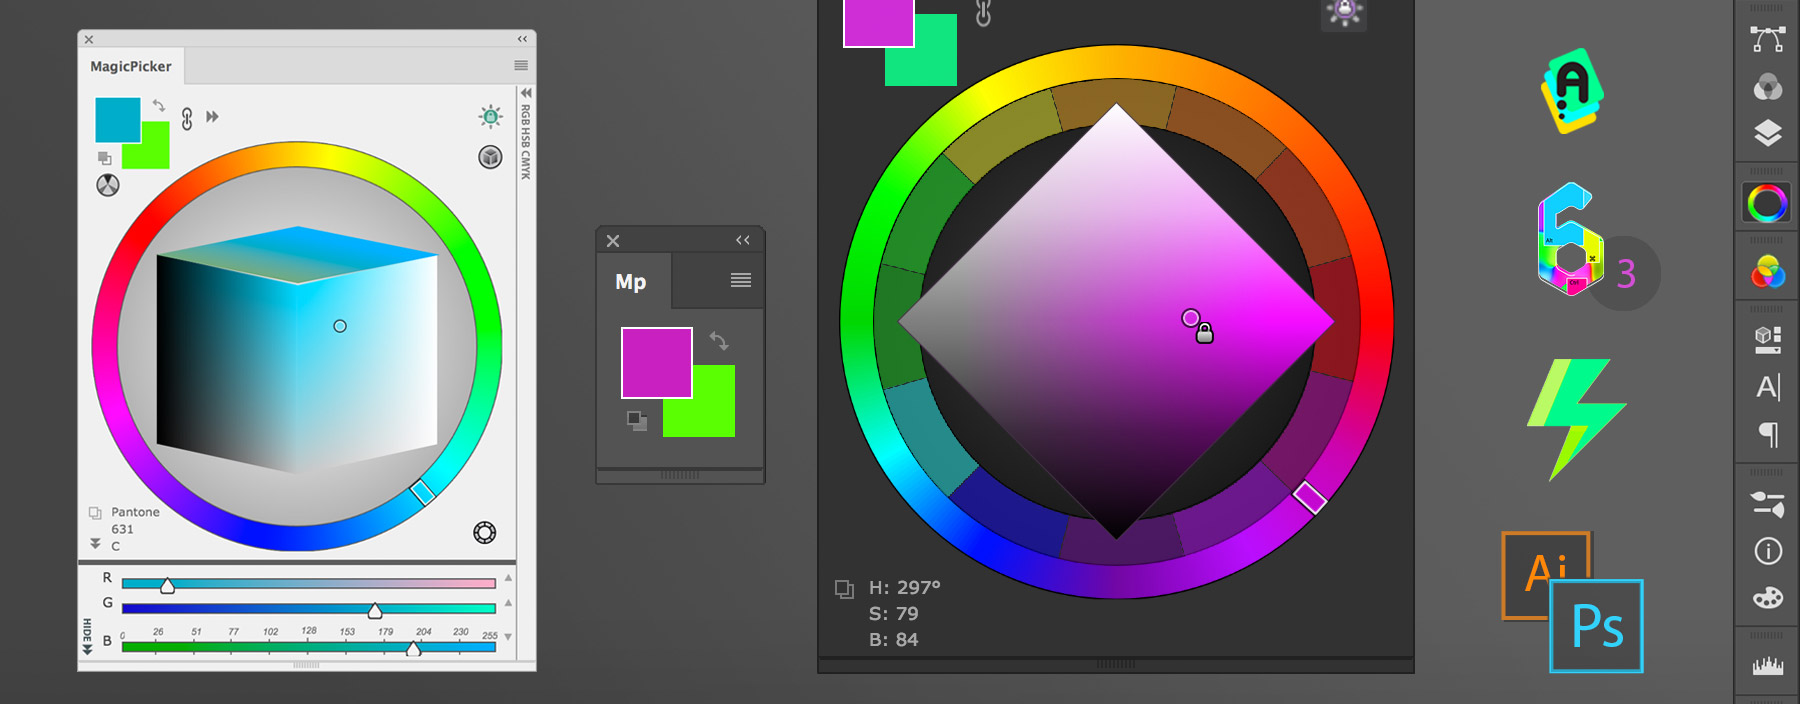 MagicPicker 6 color wheel panel for Photoshop and Illustrator